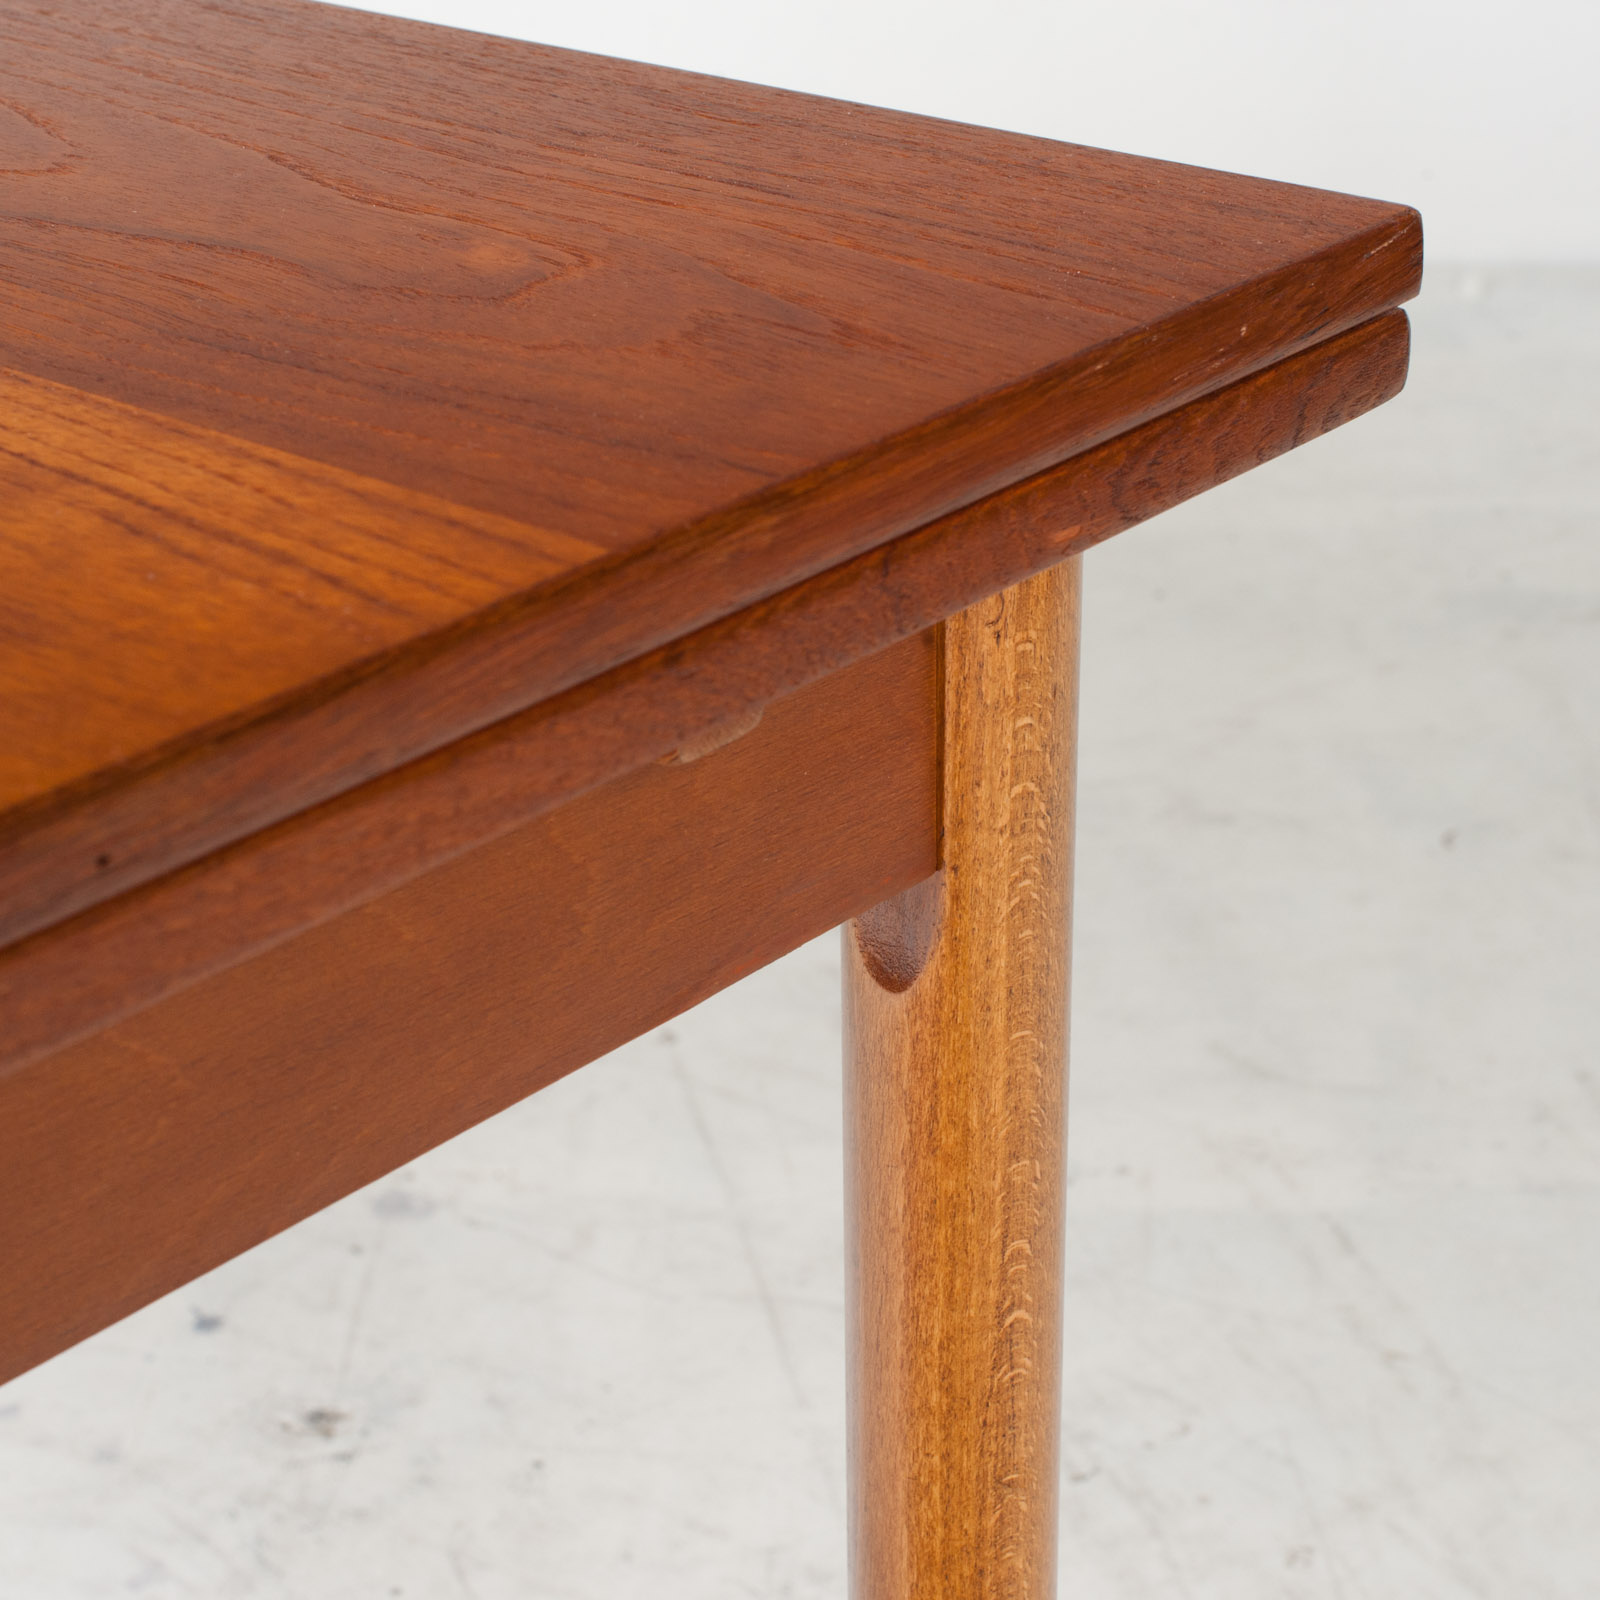 Rectangular Dining Table In Teak With Concealed Extentions 1960s Denmark6